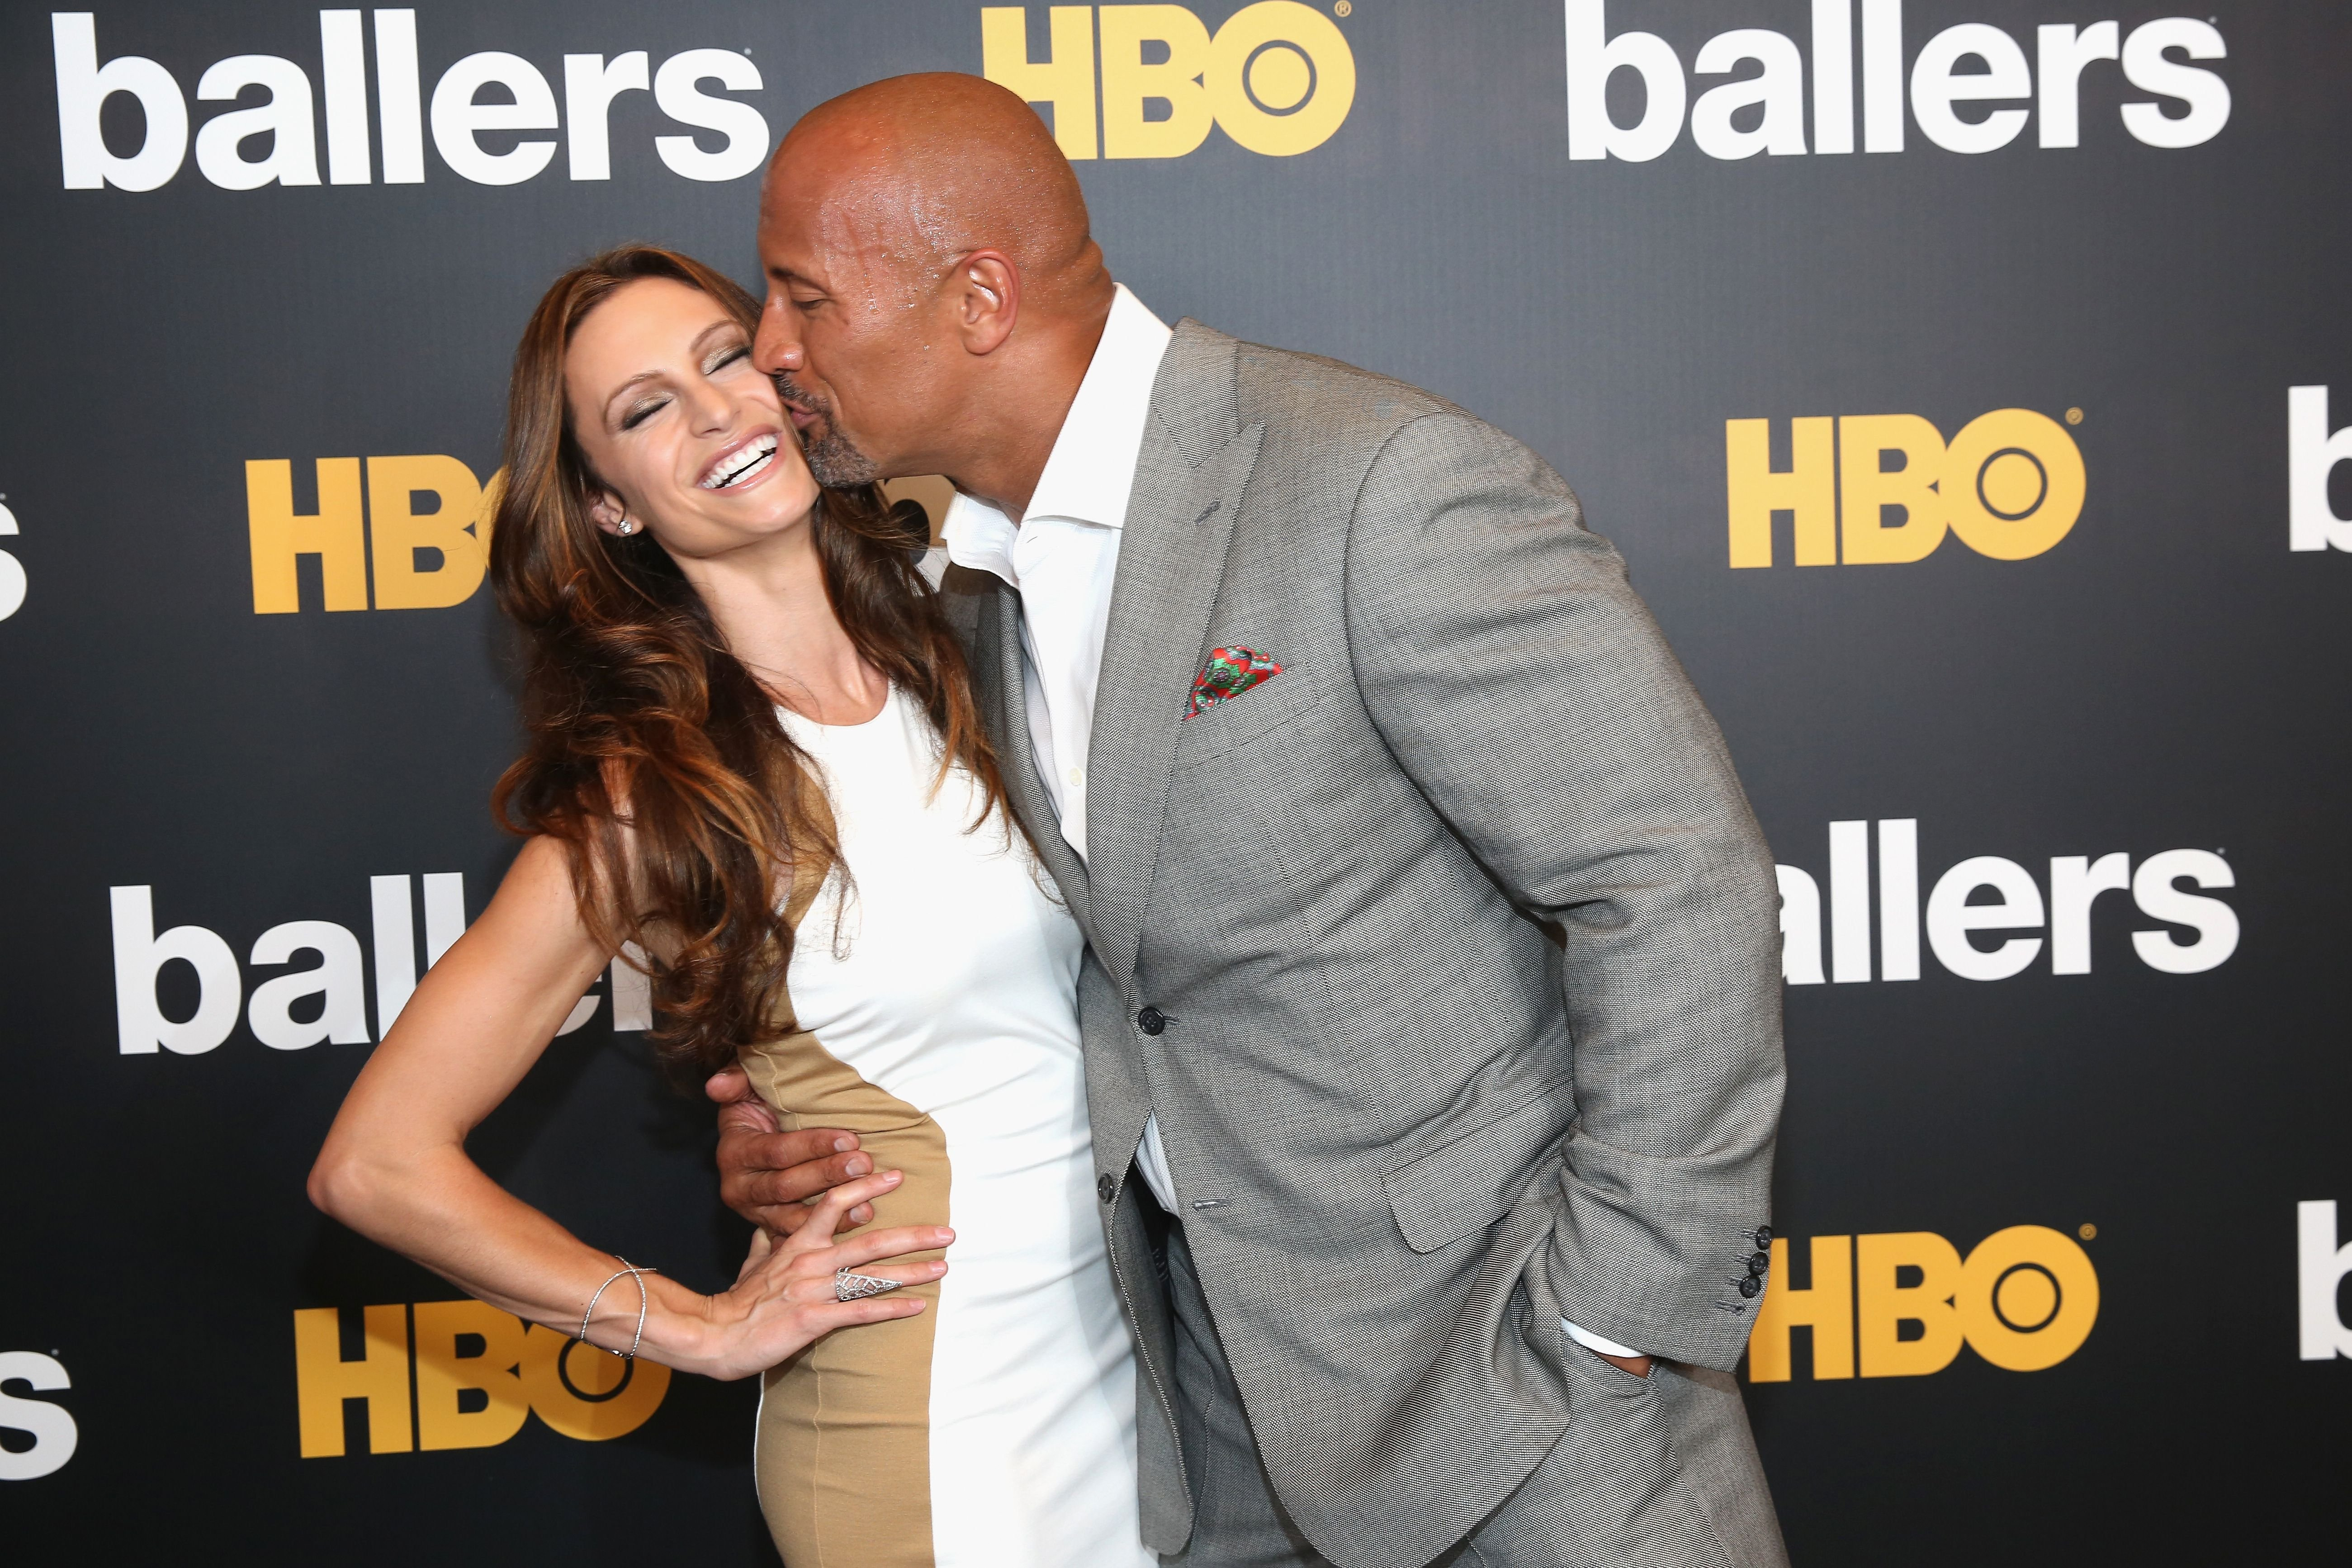 Dwayne Johnson and Lauren Hashian during the HBO 'Ballers' season 2 Red Carpet Premiere and Reception on July 14, 2016 at New World Symphony in Miami Beach, Florida.   Source: Getty Images